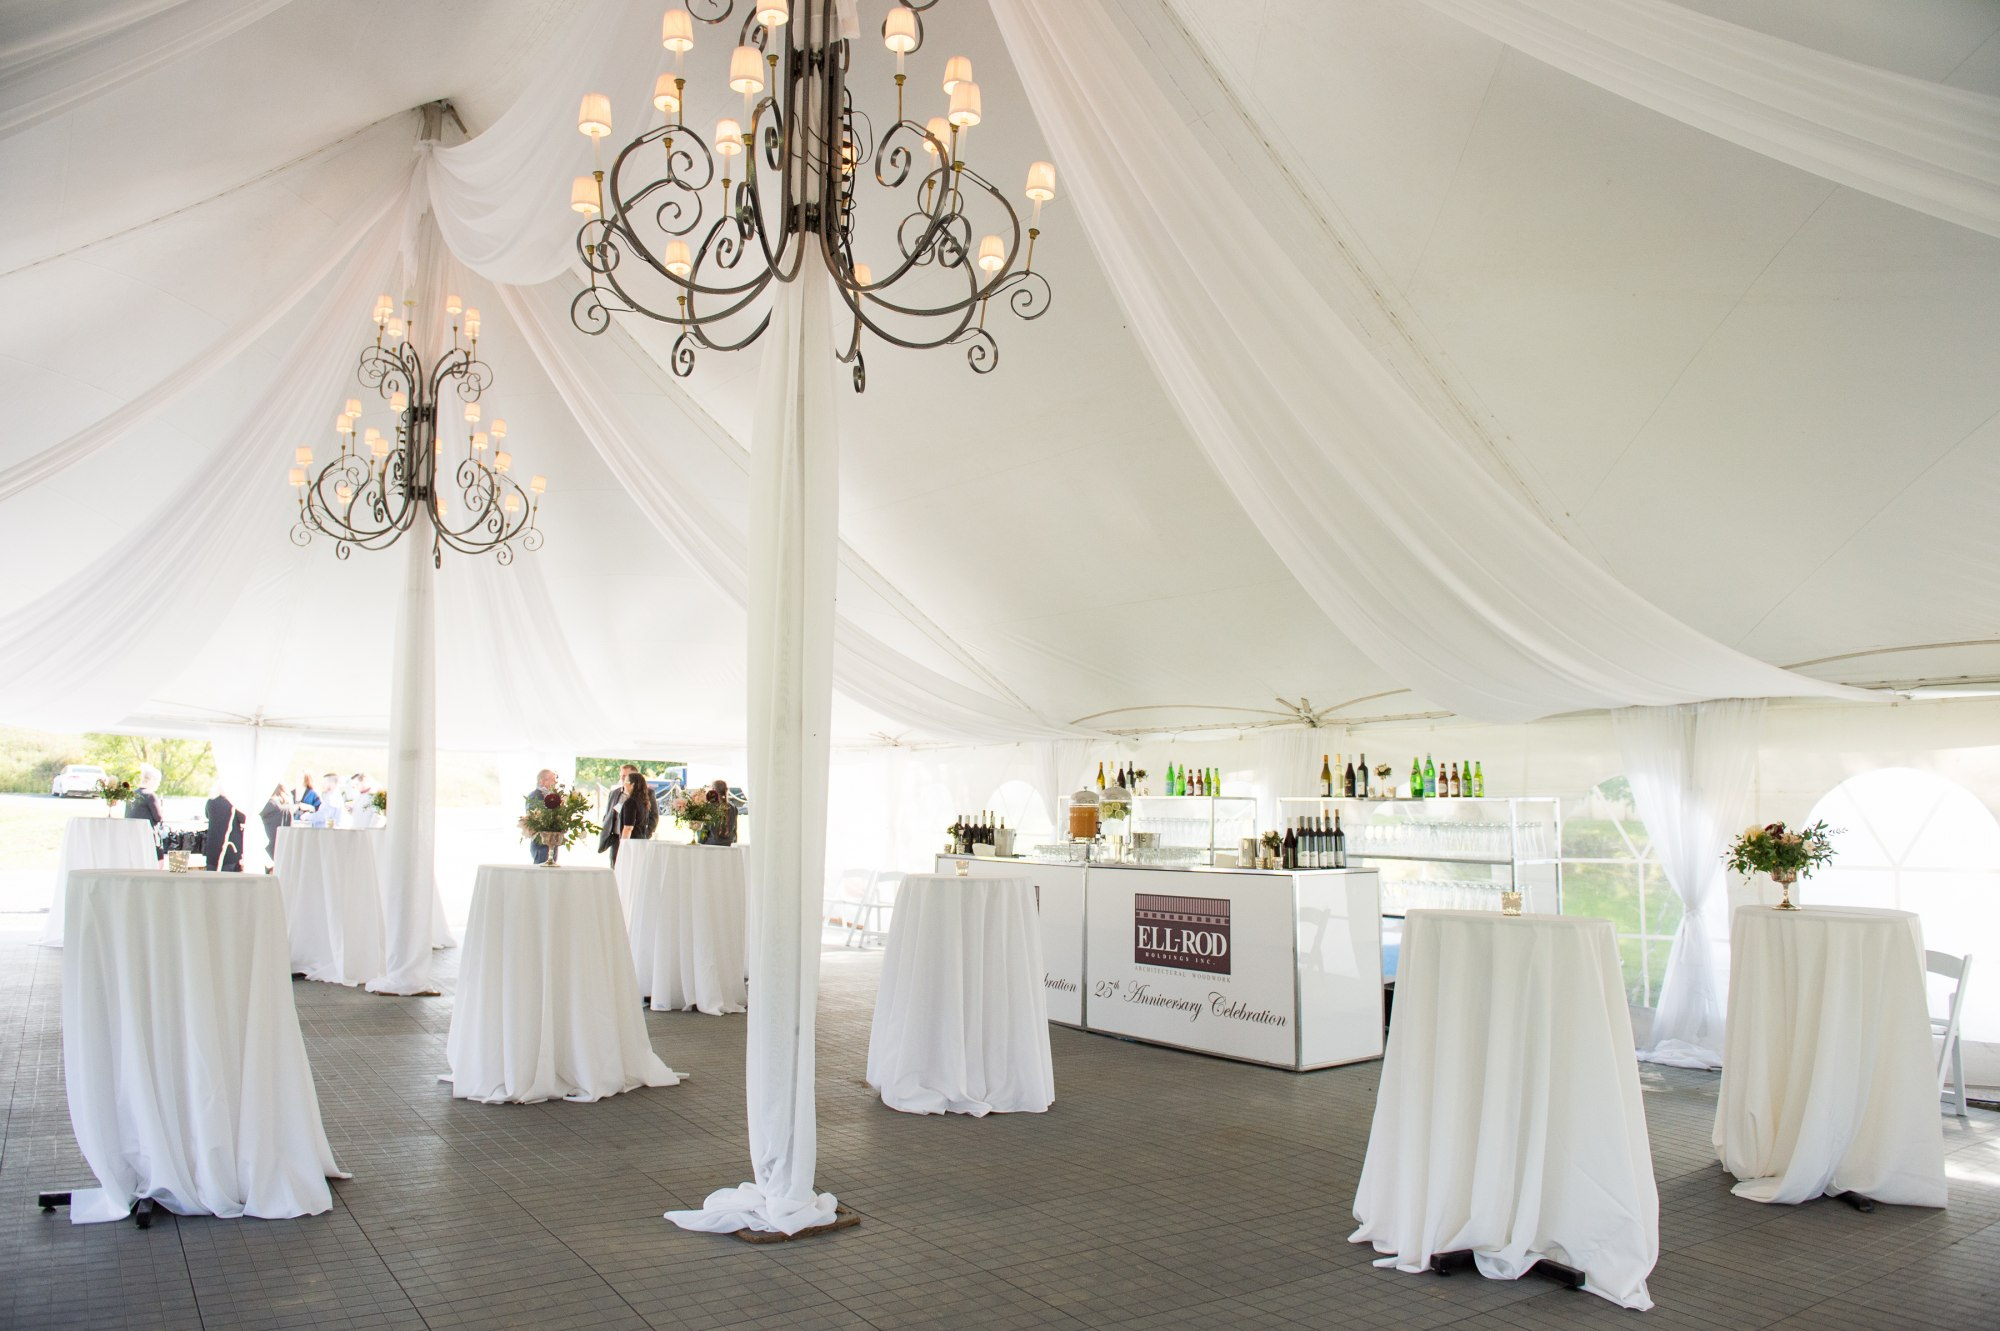 Corporate Tent Event-Ceiling Swags & Chandeliers